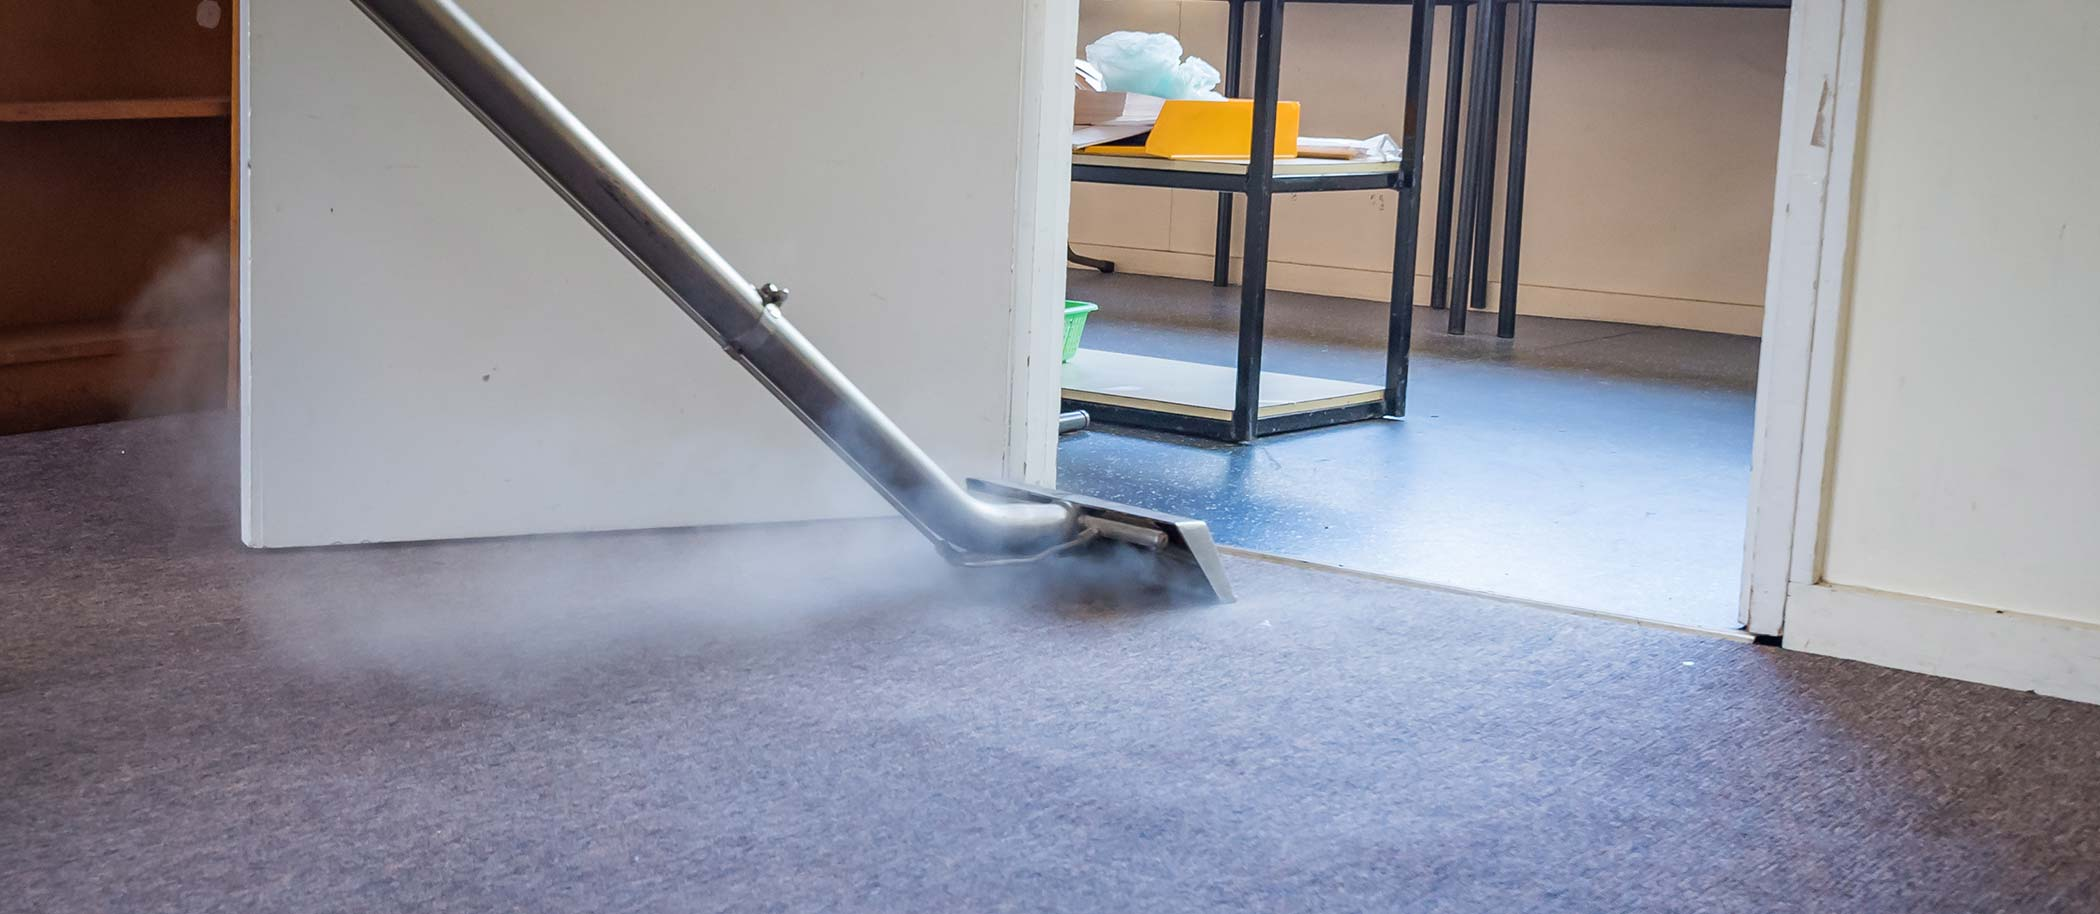 aaa-clean-residential-carpet-cleaning-in-cambridge-2